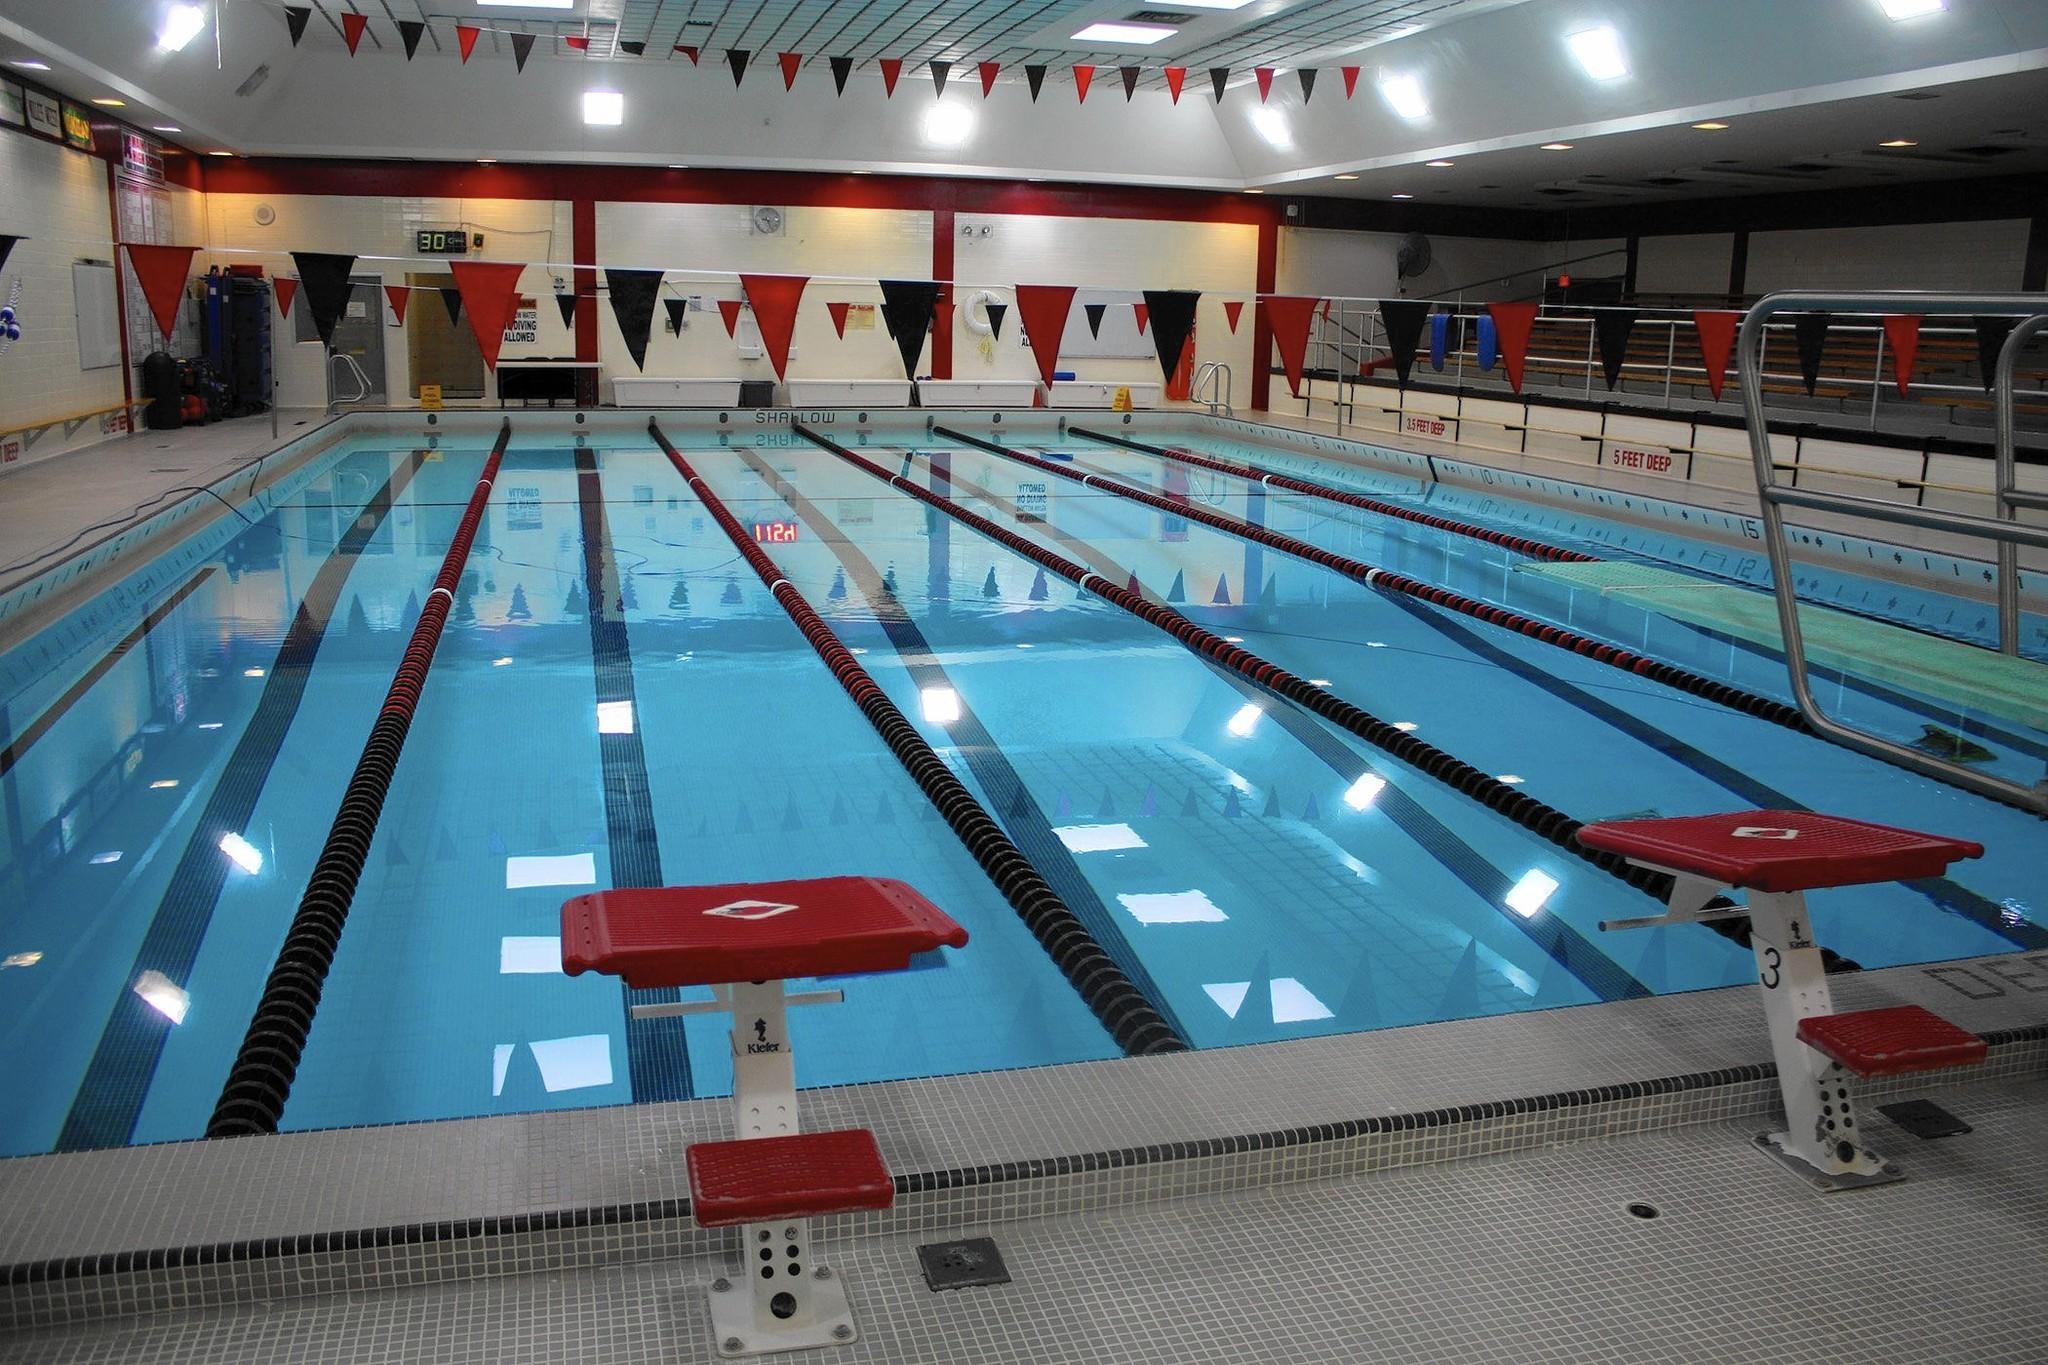 Initial test results indicate air quality issues at maine south pool park ridge herald advocate for Public swimming pools locations maine